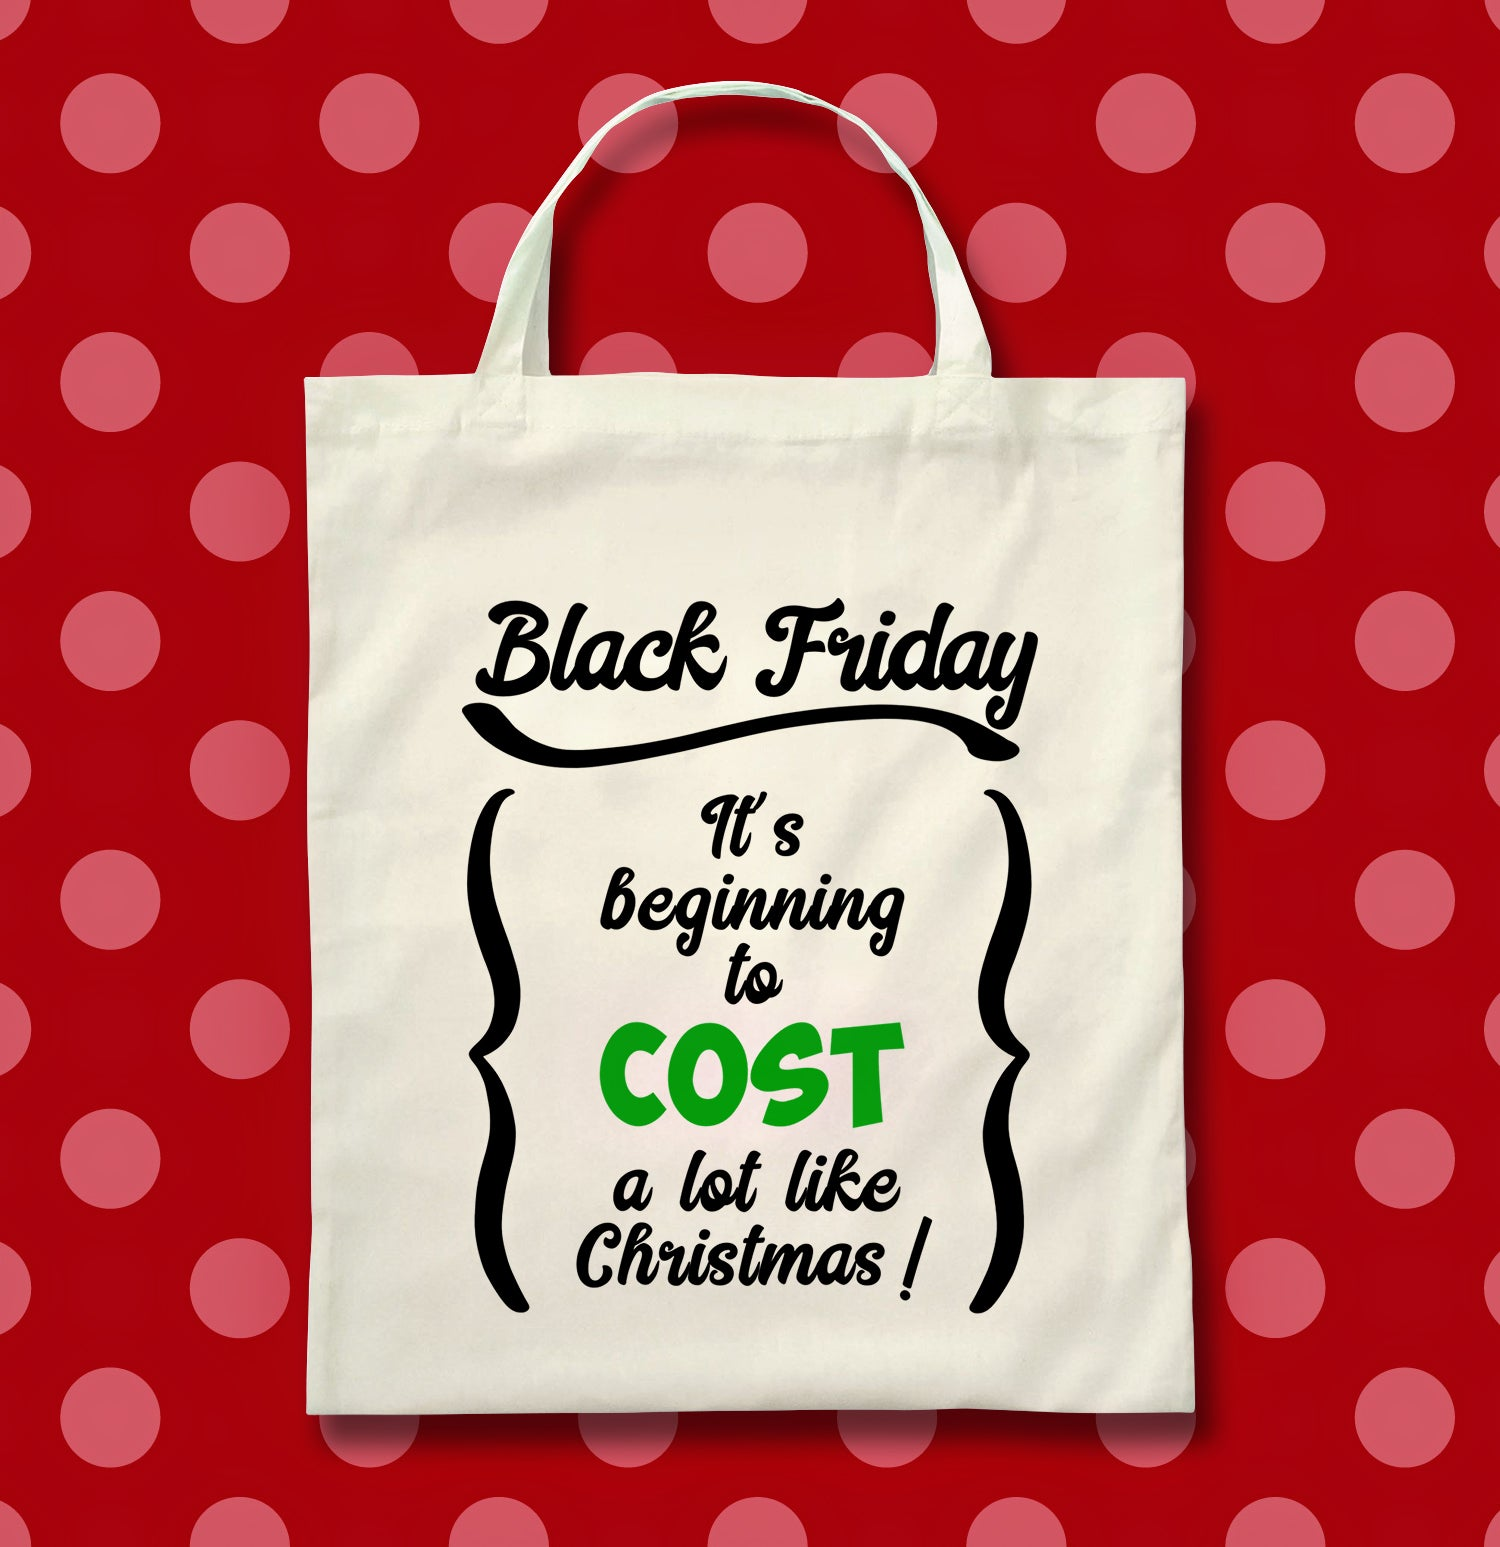 Black Friday Shirt SVG, Black Friday Cut File, Funny Black Friday Saying SVG, Cost a Lot Like Christmas SVG, Christmas Shopping SVG